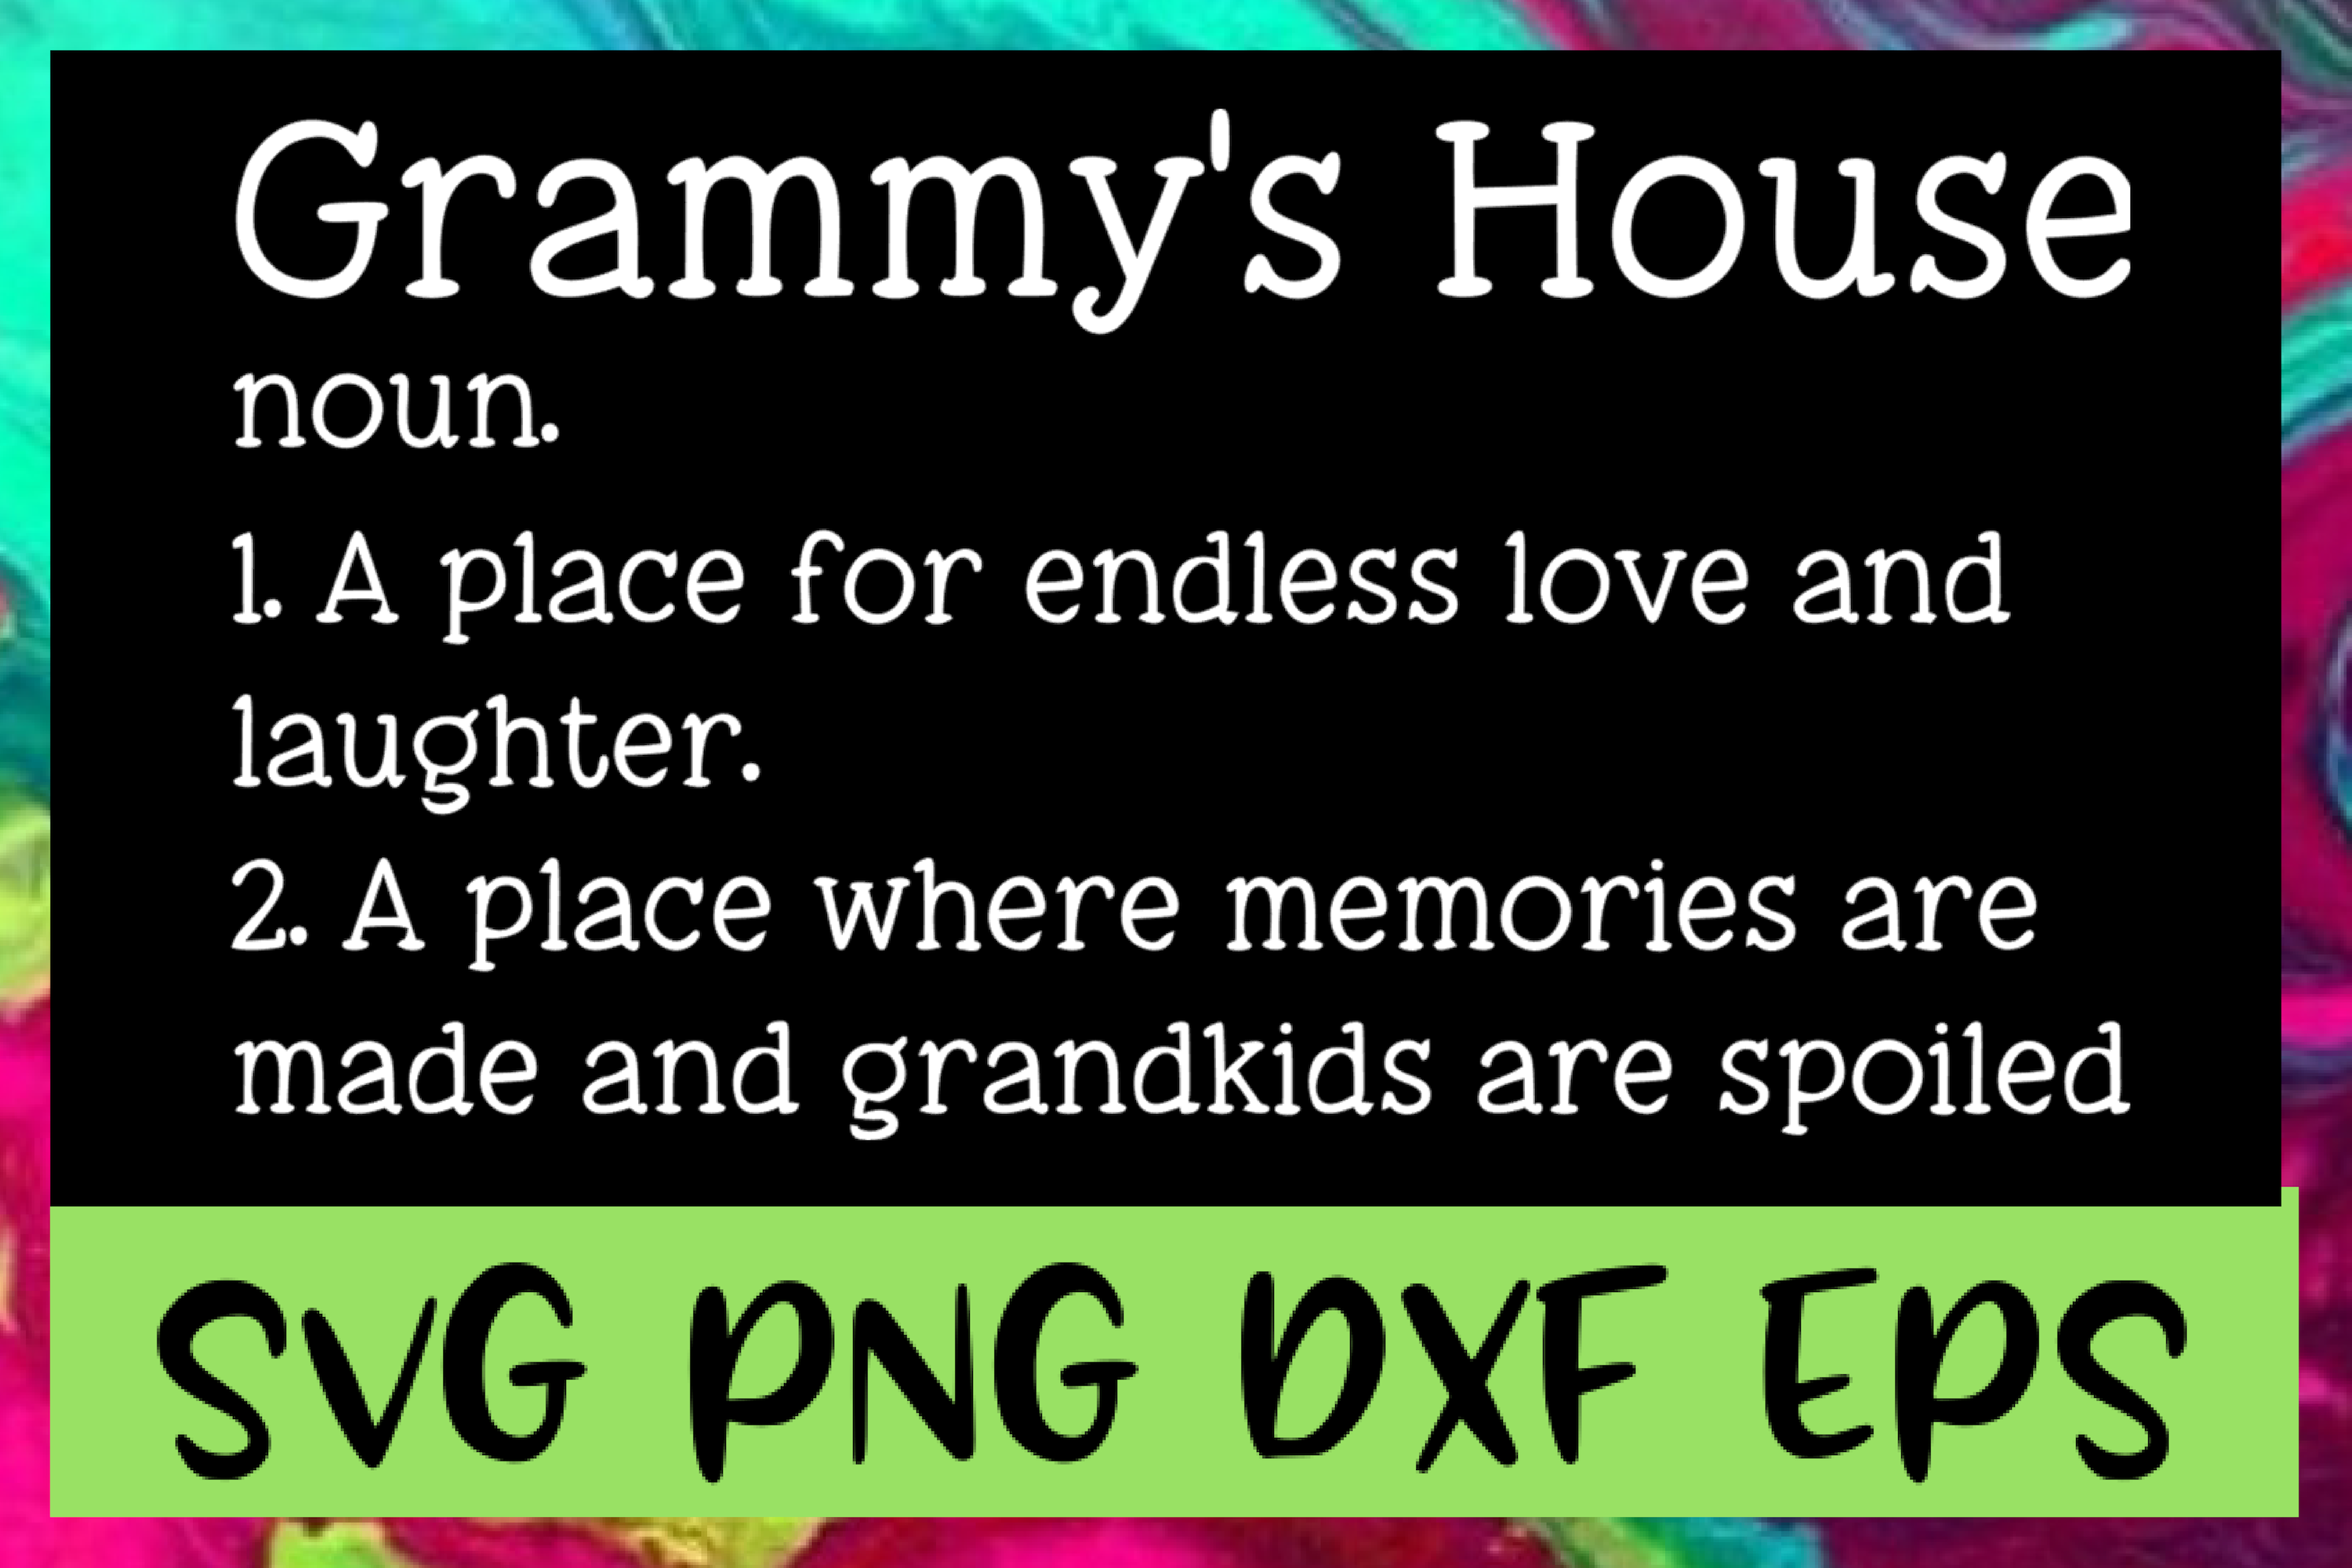 Grammy's House Definition SVG PNG DXF & EPS Design Files example image 1